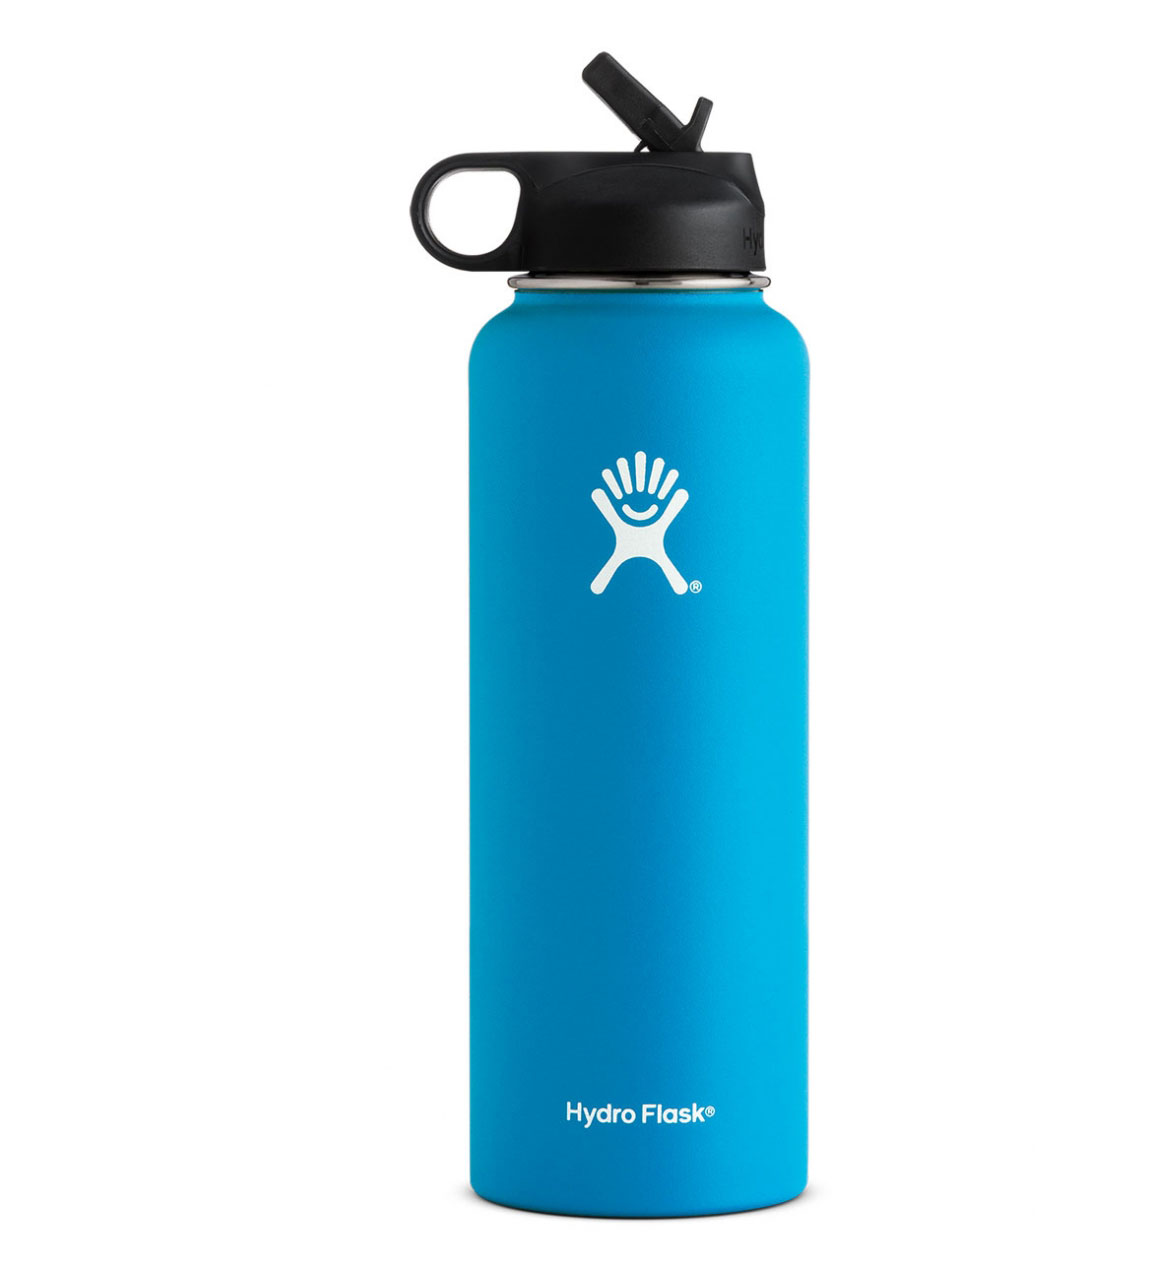 Hydro Flask: 40 oz Wide Mouth w/ Straw Lid-Pacific